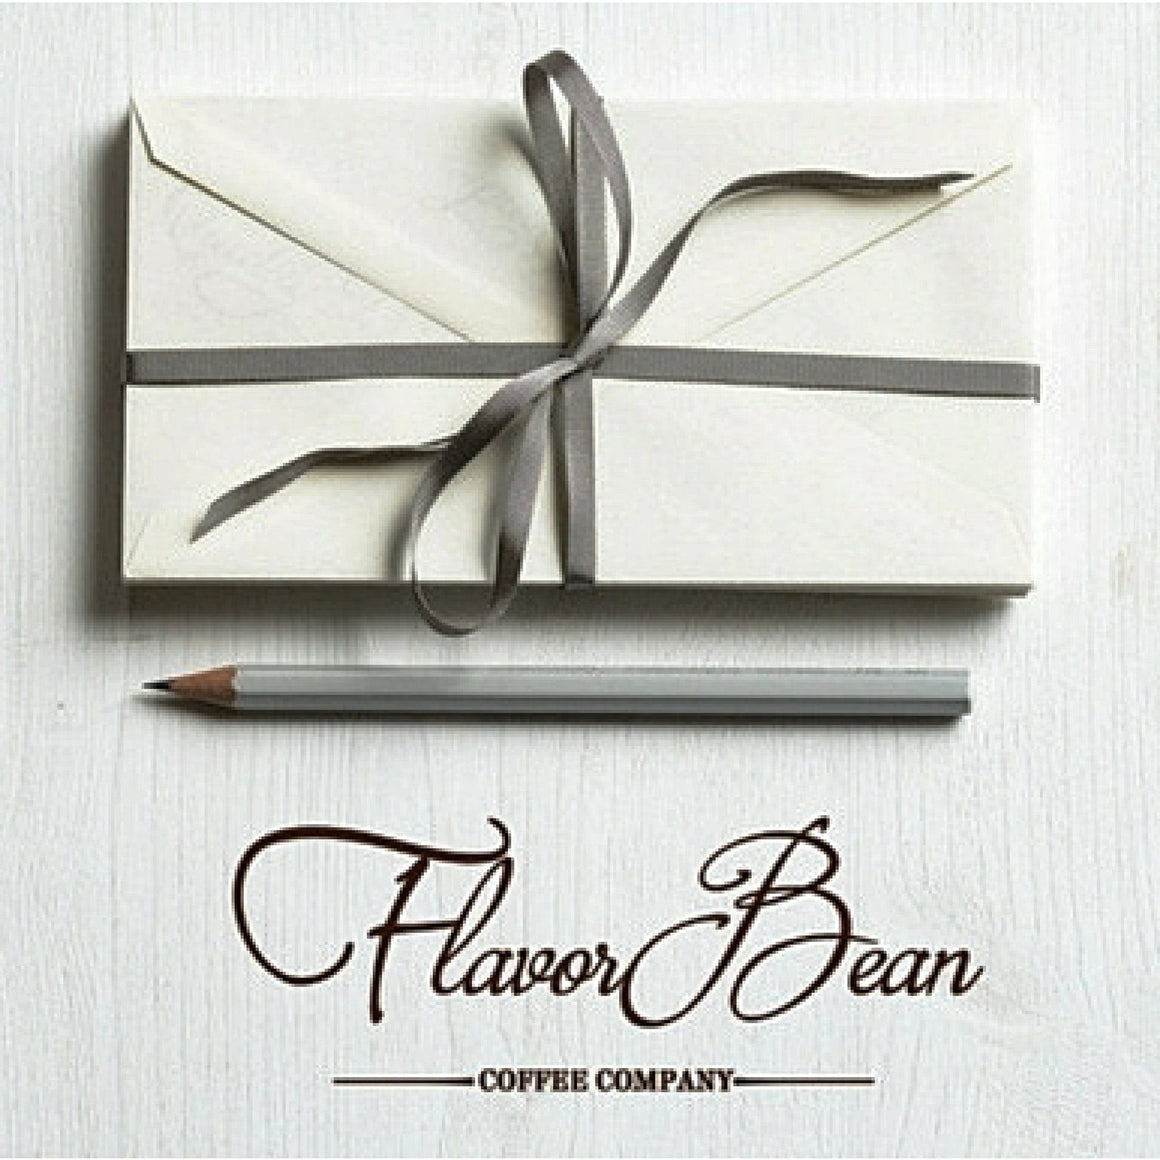 Flavorbean Gift Cards $10.00 - $200.00